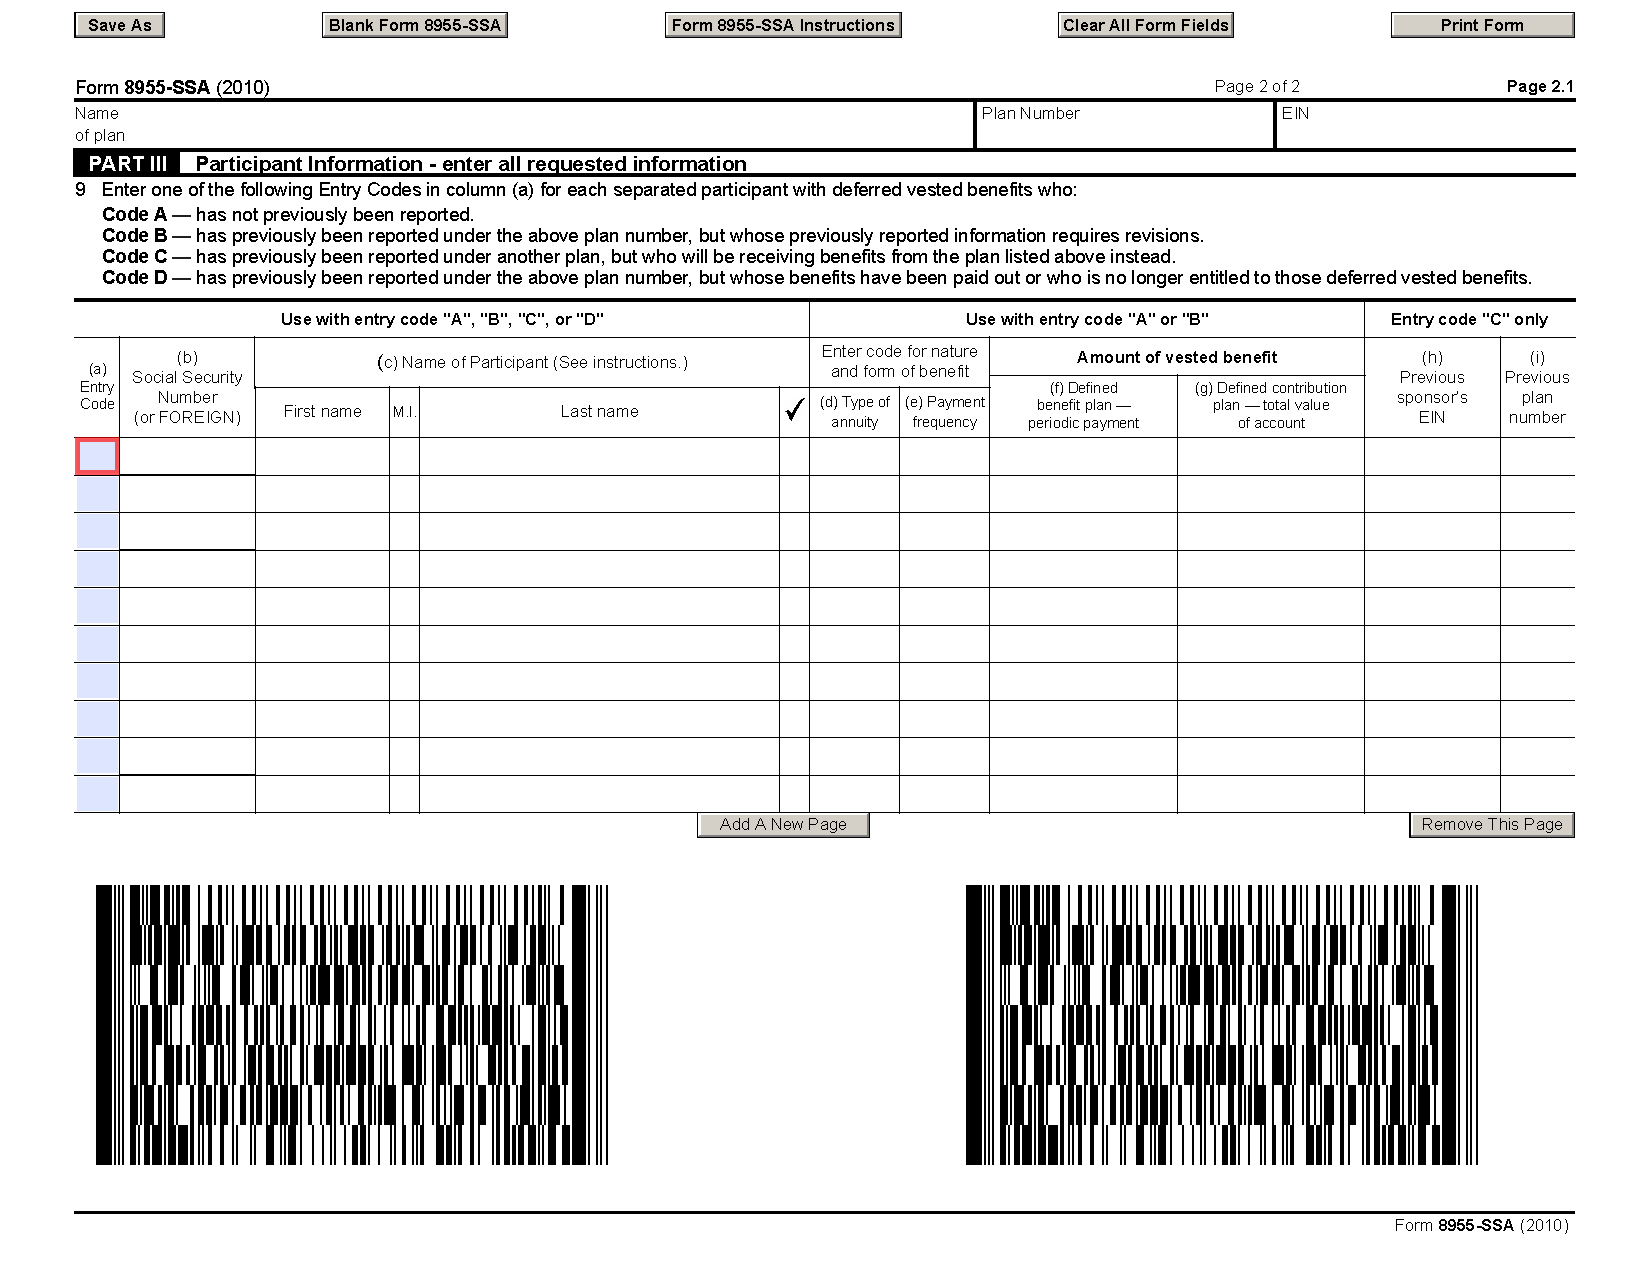 Form 8955-SSA Annual Registration Statement Identifying Separated ...